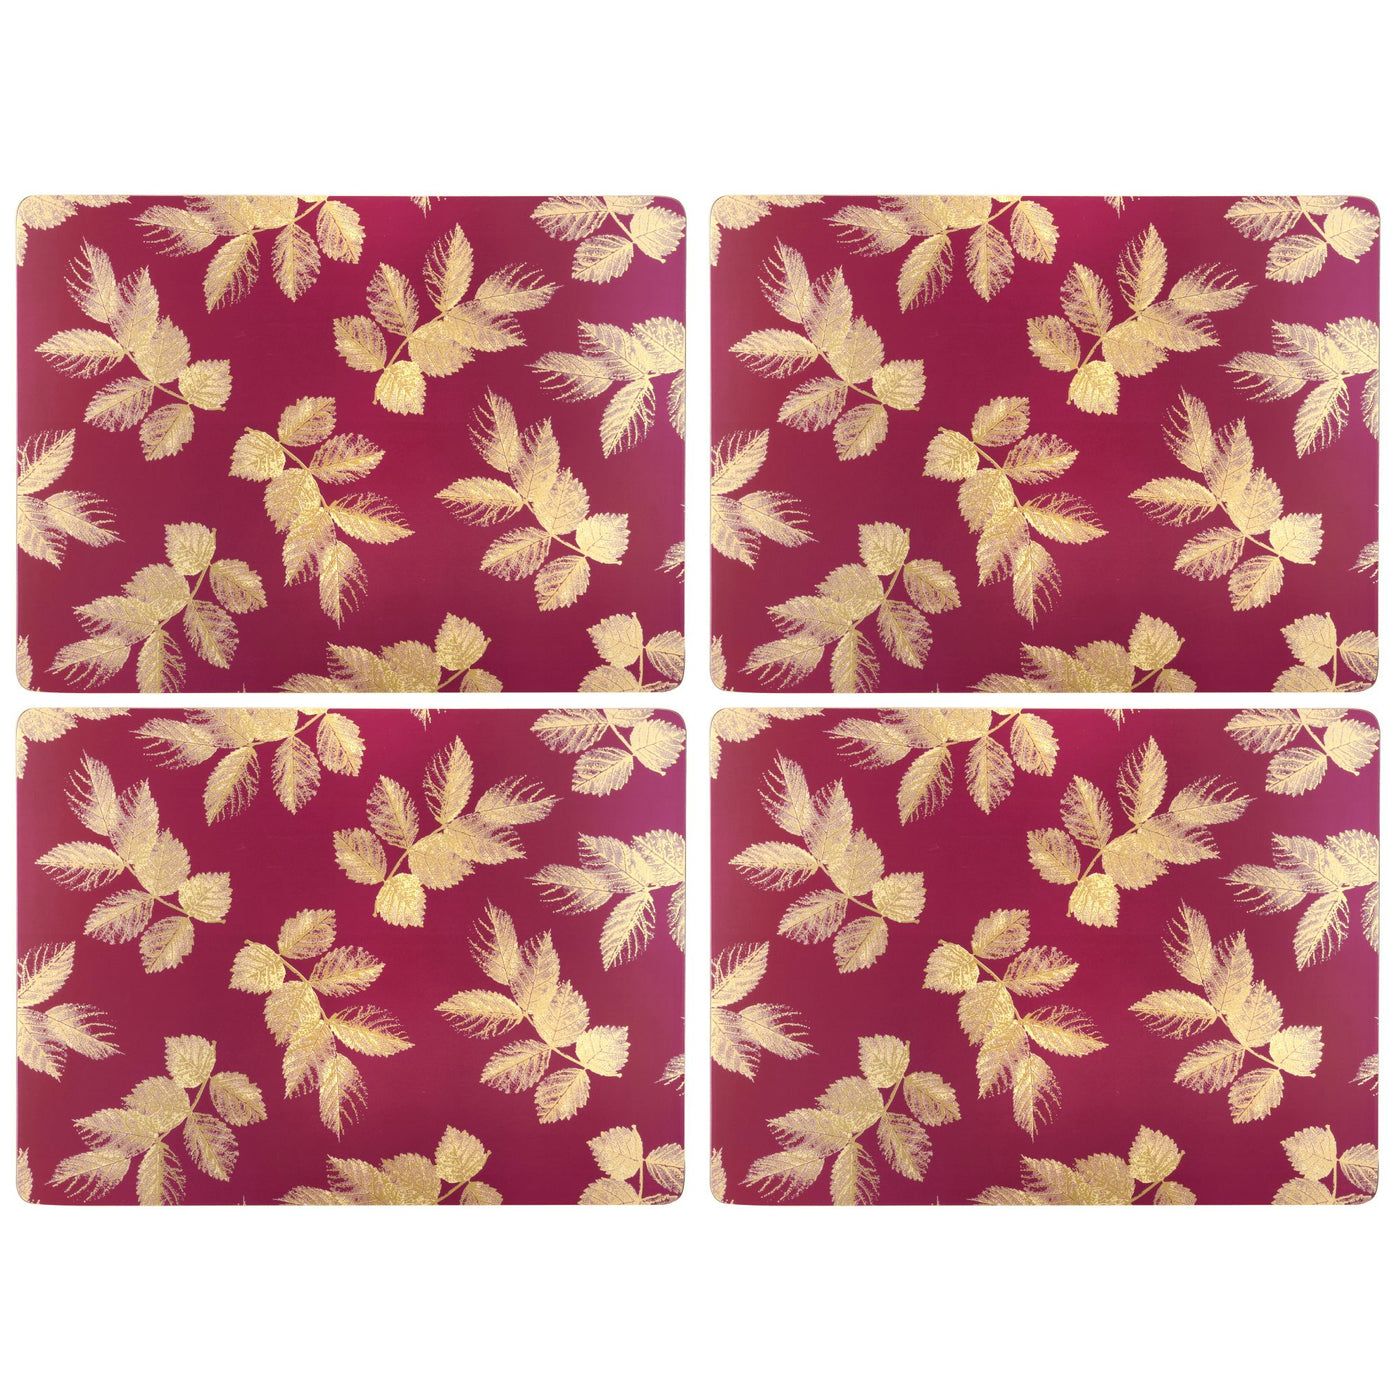 Sara Miller Etched Leaves Pink Mats,Set of 4